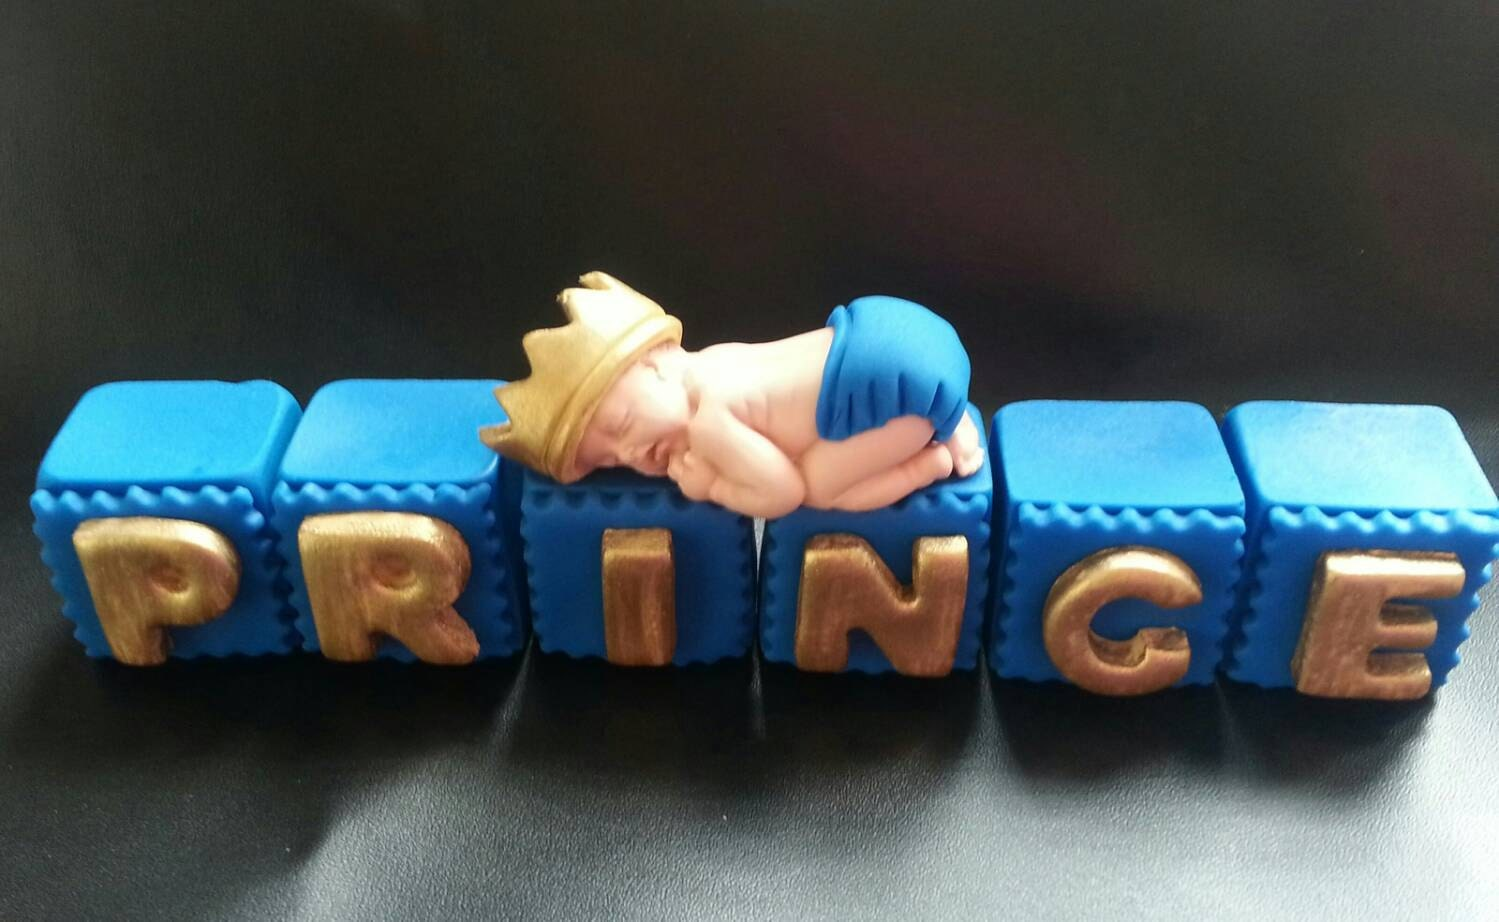 Cake Decorating Letter Blocks : Fondant edible PRINCE baby with letter blocks cake topper for